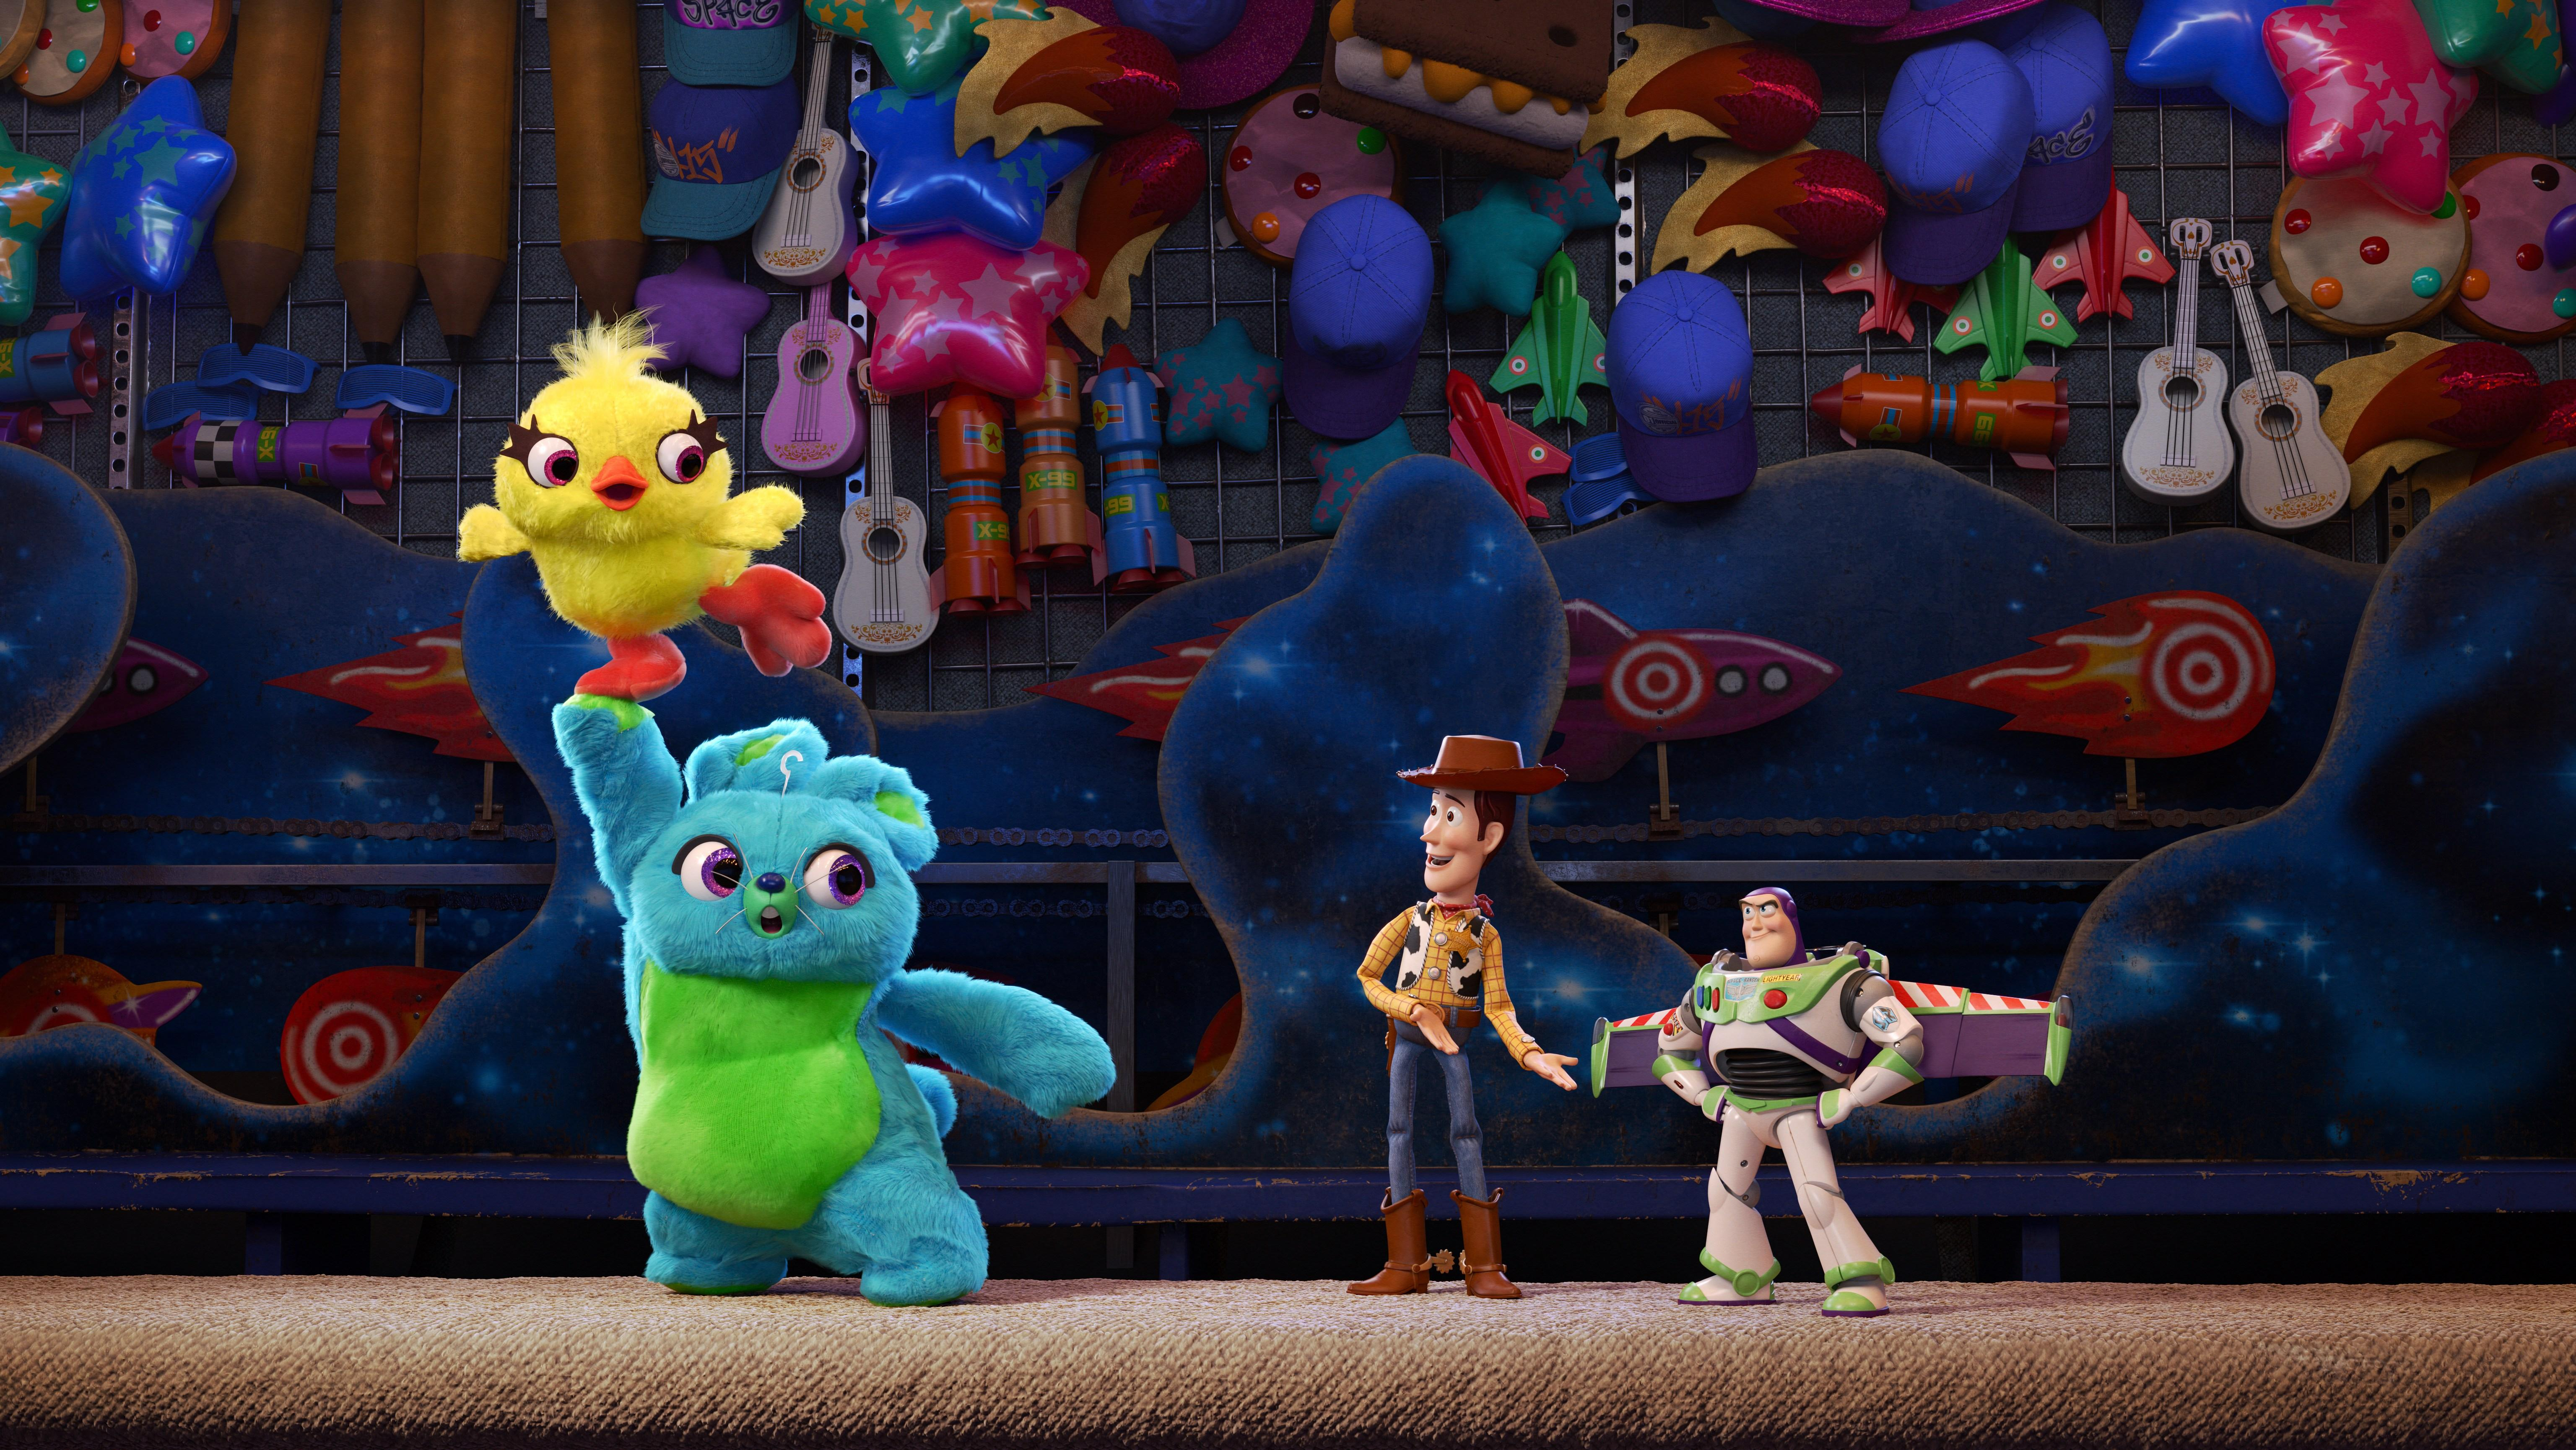 Wallpaper Toy Story 4, Woody, Buzz Lightyear, Animation, 2019, 5K ...